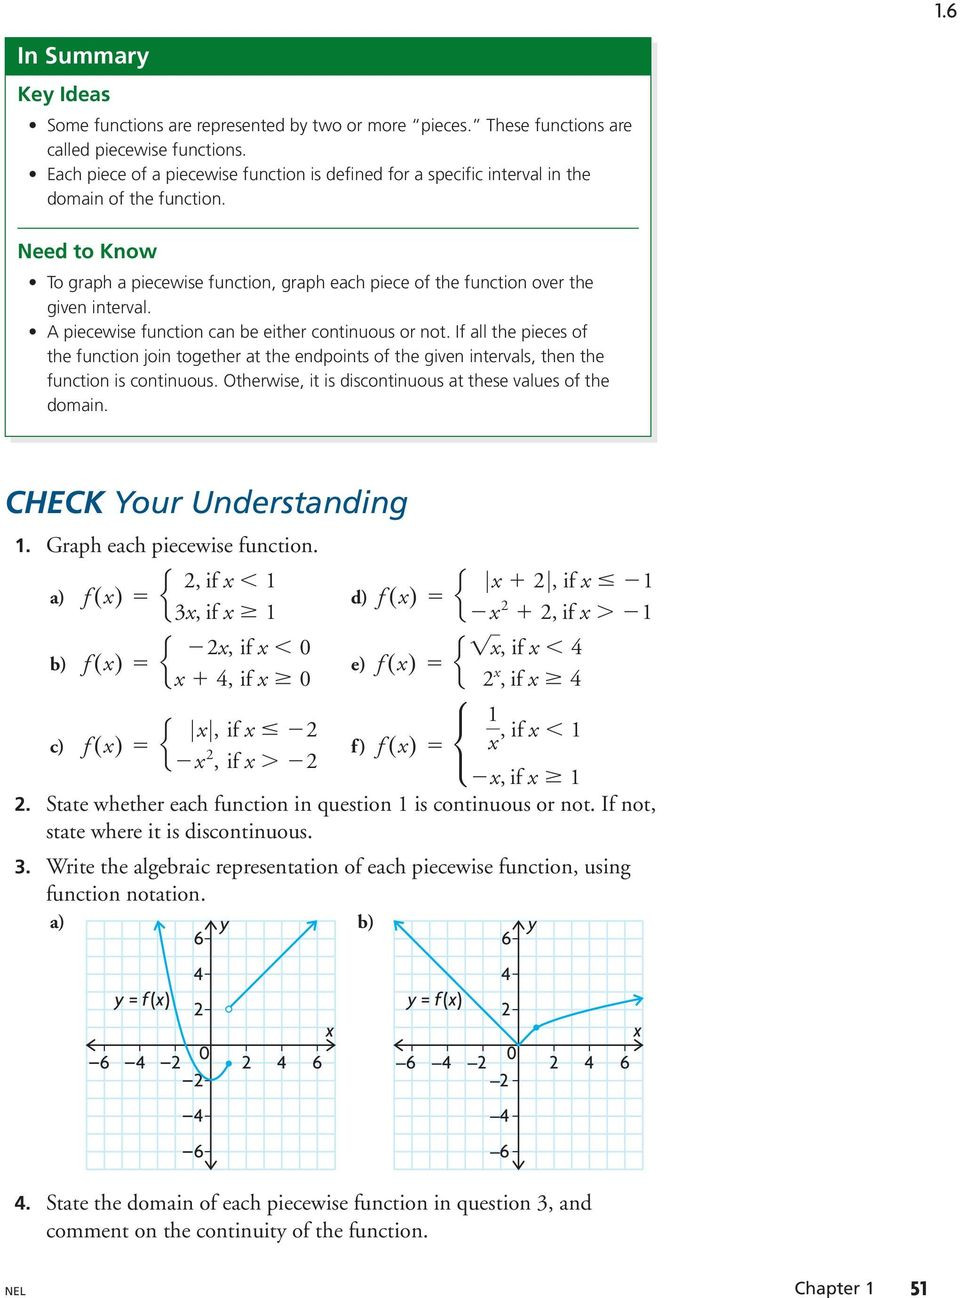 Worksheet Piecewise Functions Algebra 2 1 6 Piecewise Functions Learn About the Math Representing